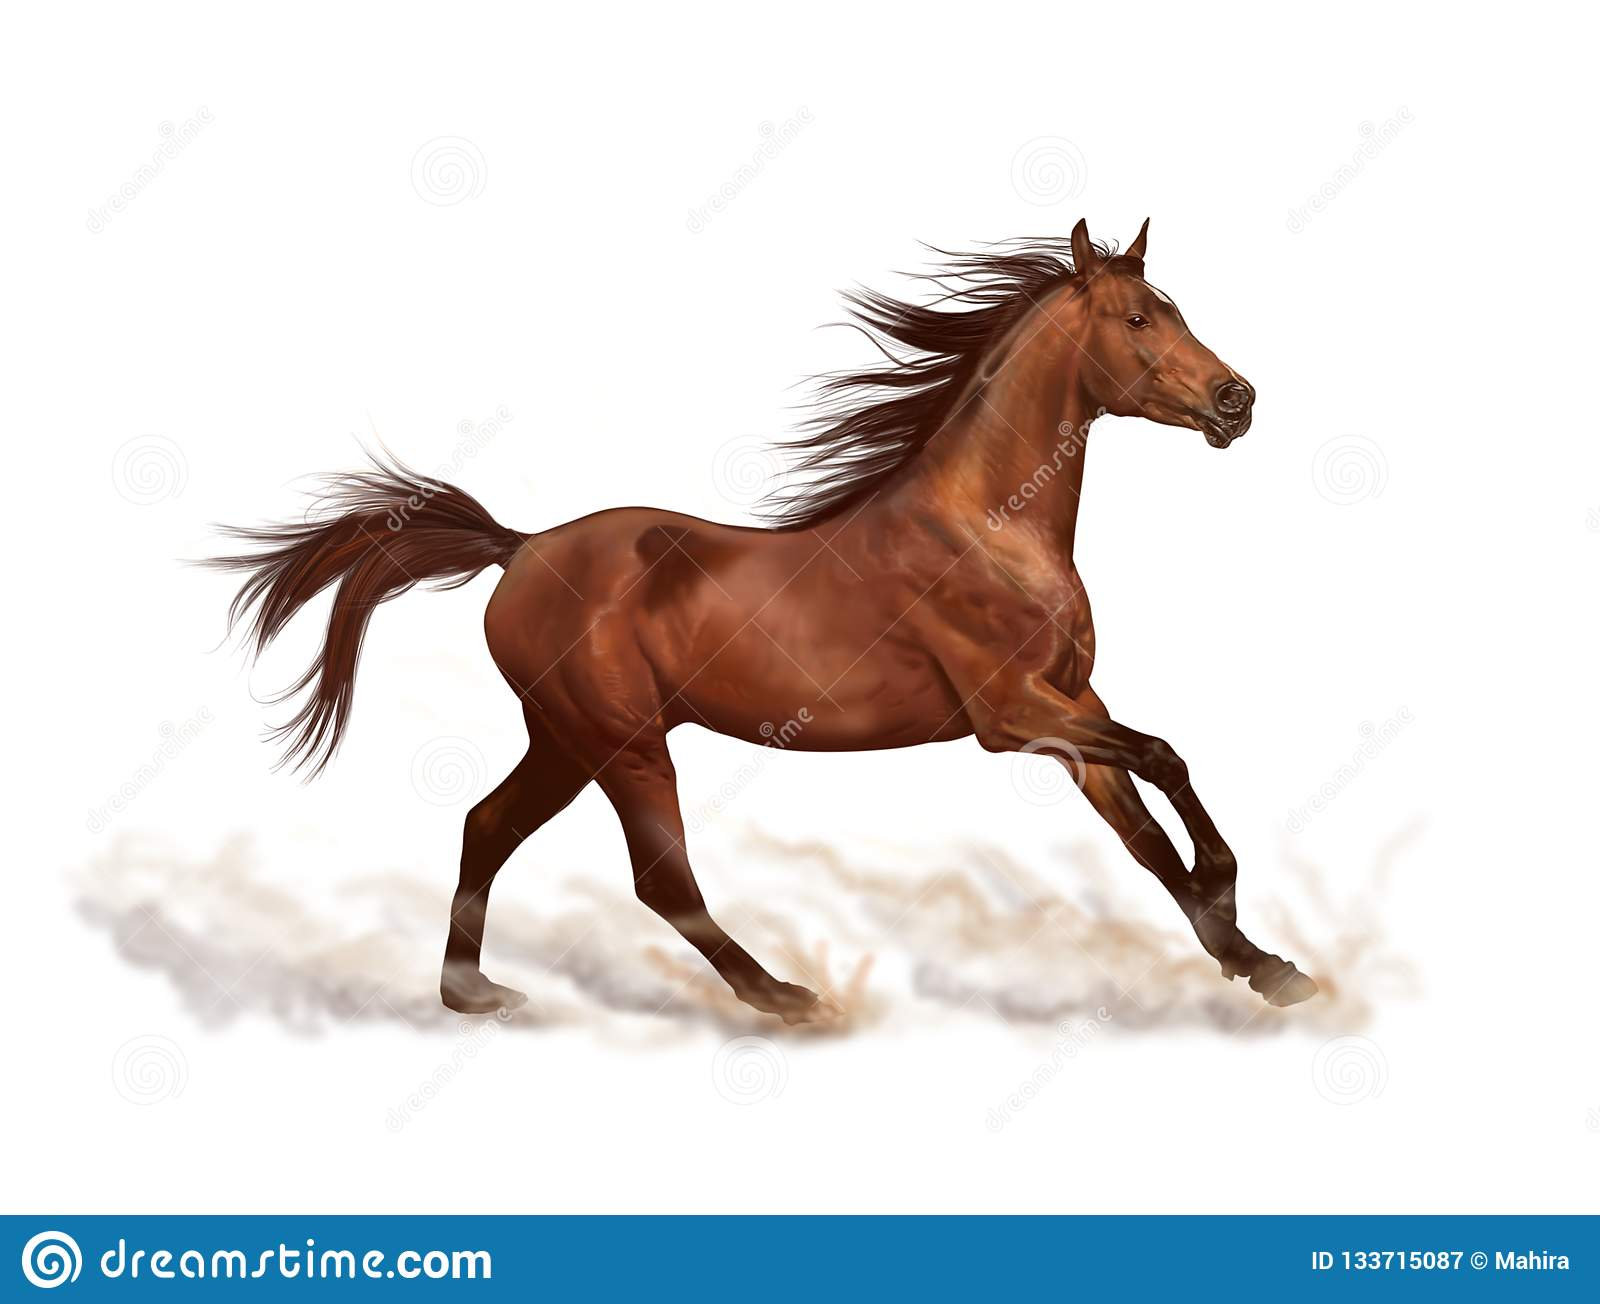 Horse White Background Stock Illustrations 50 313 Horse White Background Stock Illustrations Vectors Clipart Dreamstime